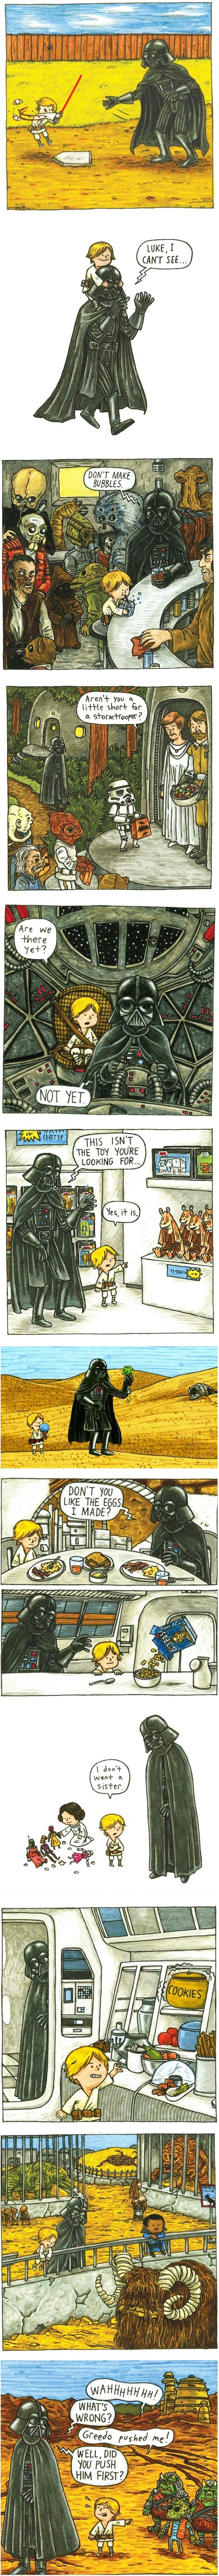 Just in time for Father's Day... What Luke's childhood might have looked like if Darth Vader had been a good dad.